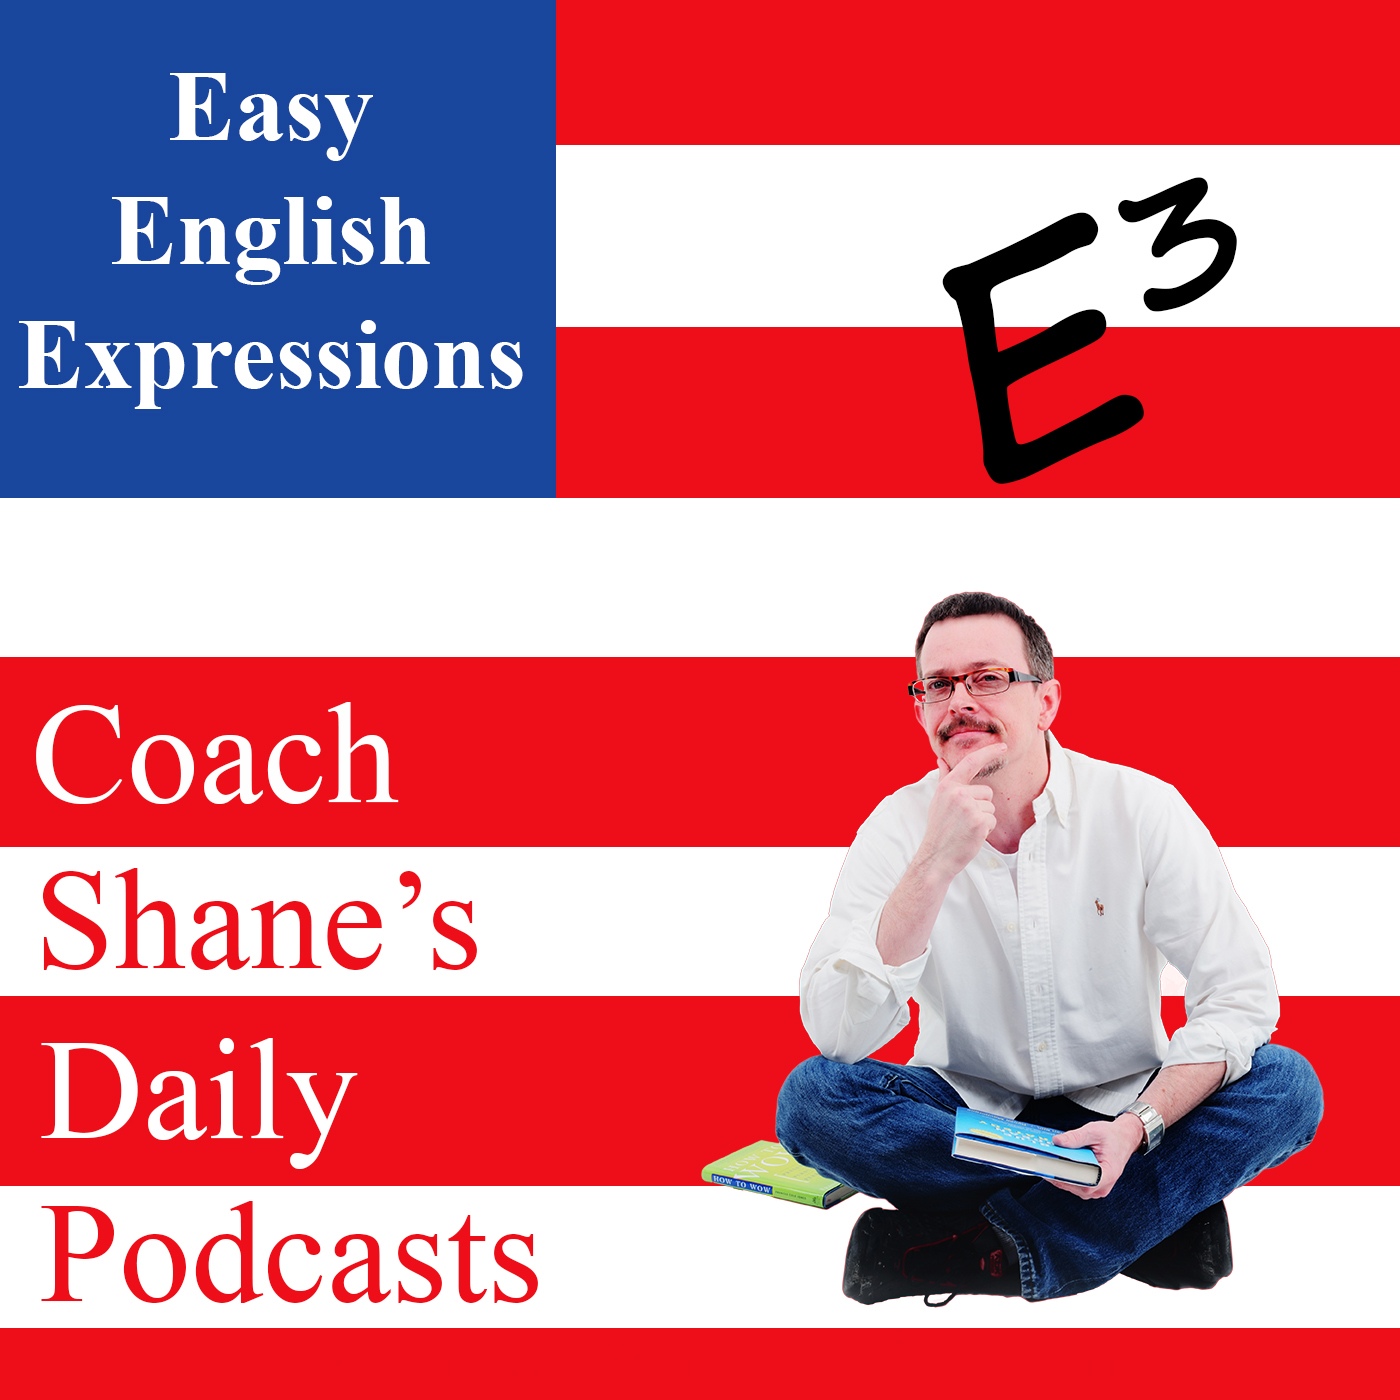 30 Daily Easy English Expression PODCAST—Knock on wood!